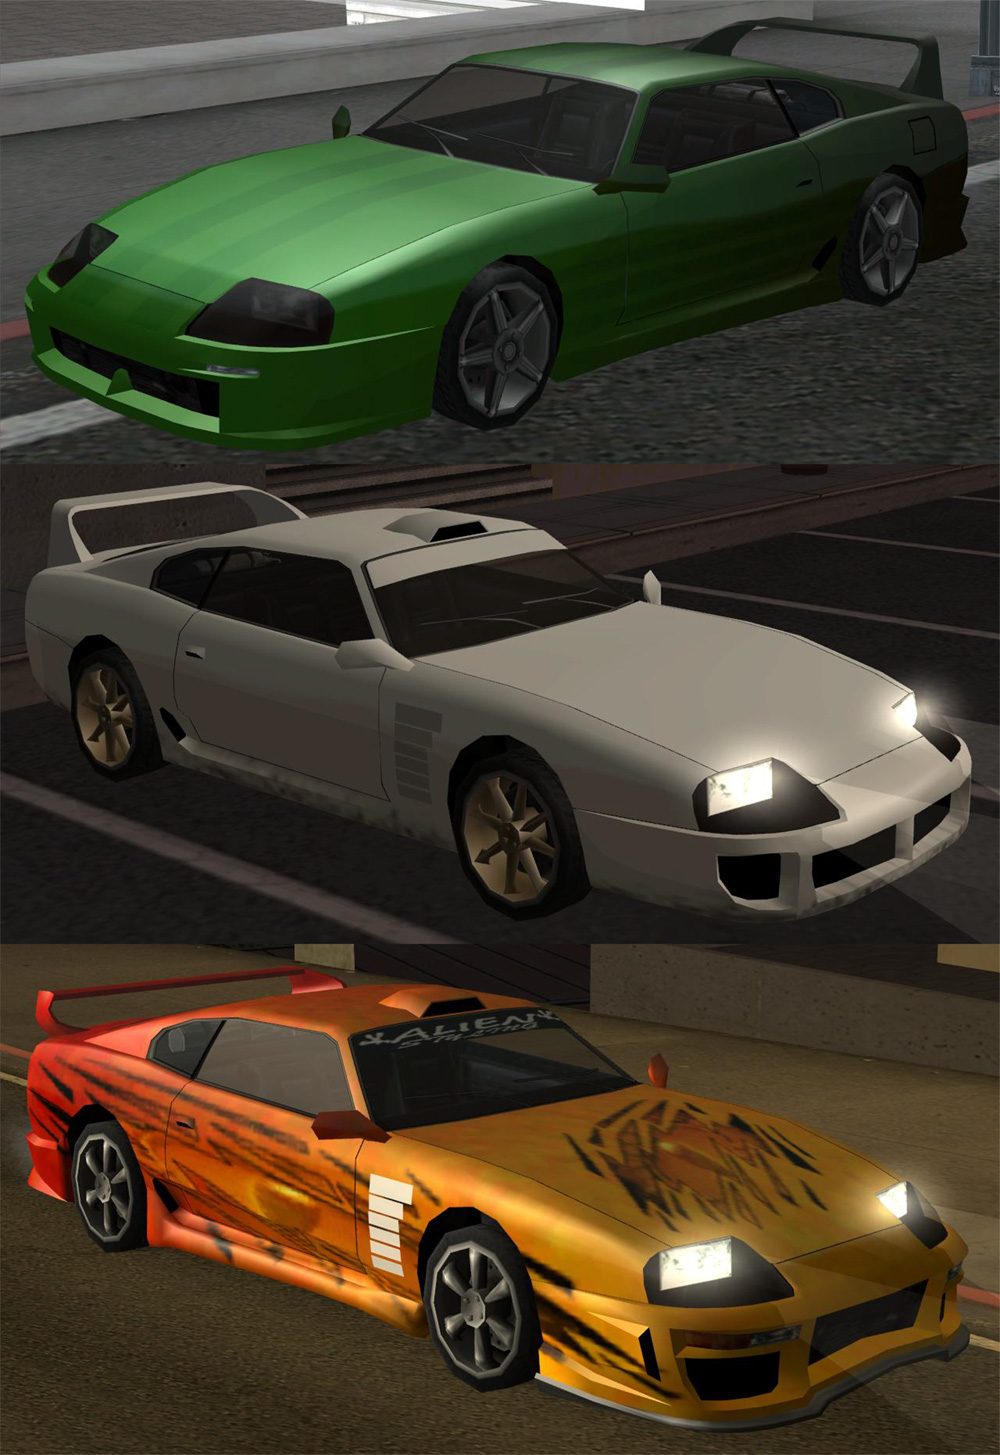 Jester-GTASA-modified-front.jpg